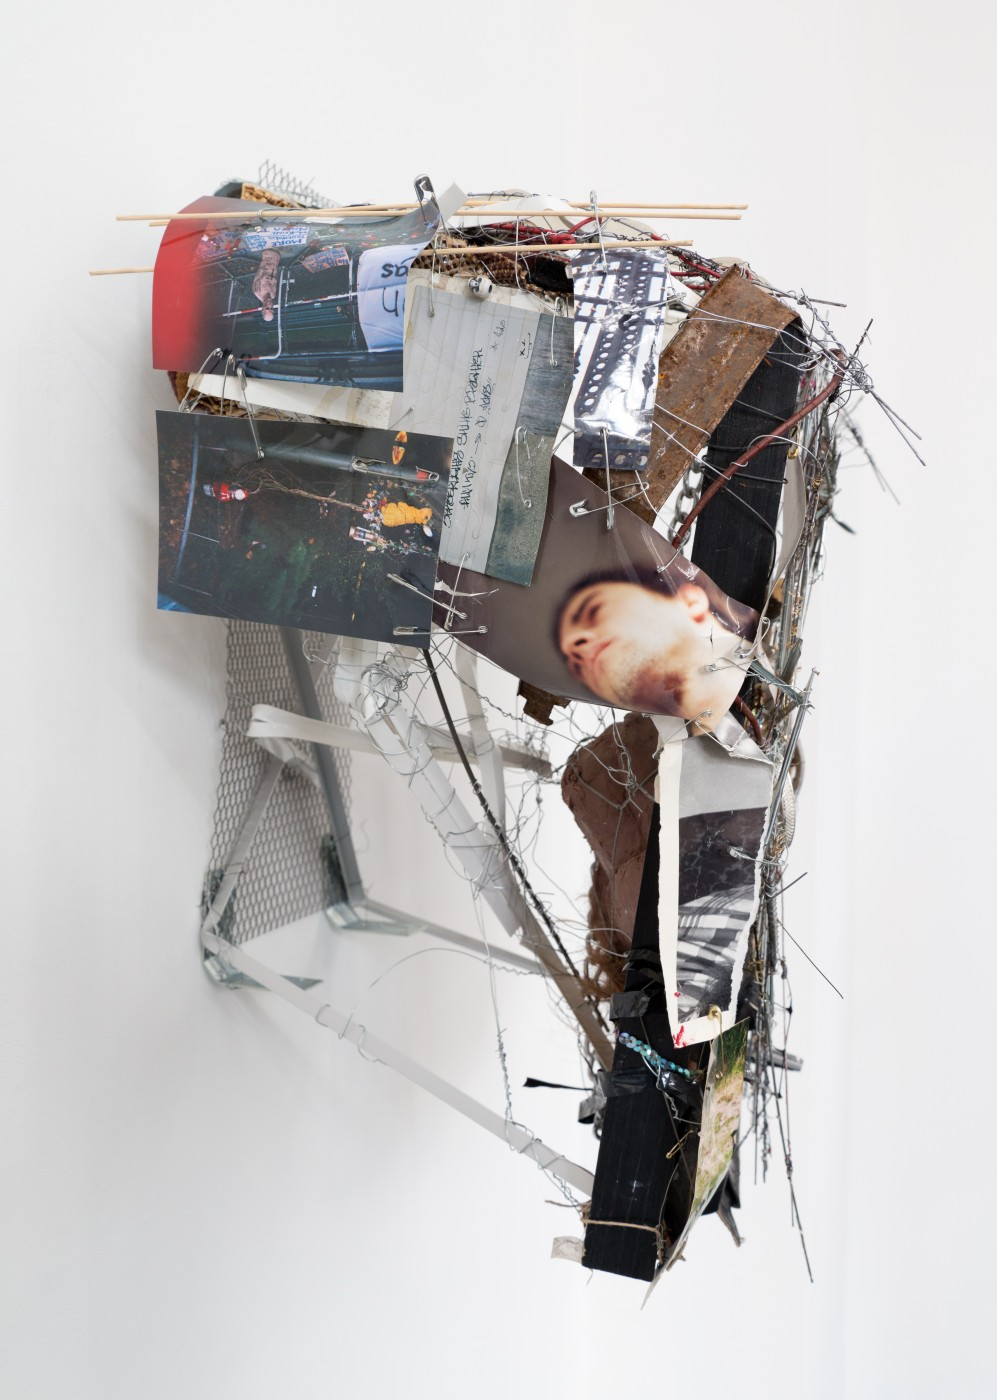 METROPOLITAN  Caracole</I>, 2015 (detail) Mixed media 62 x 49 x 31 cm / 24.4 x 19.3 x 12.2 in  ROBERT BITTENBENDER